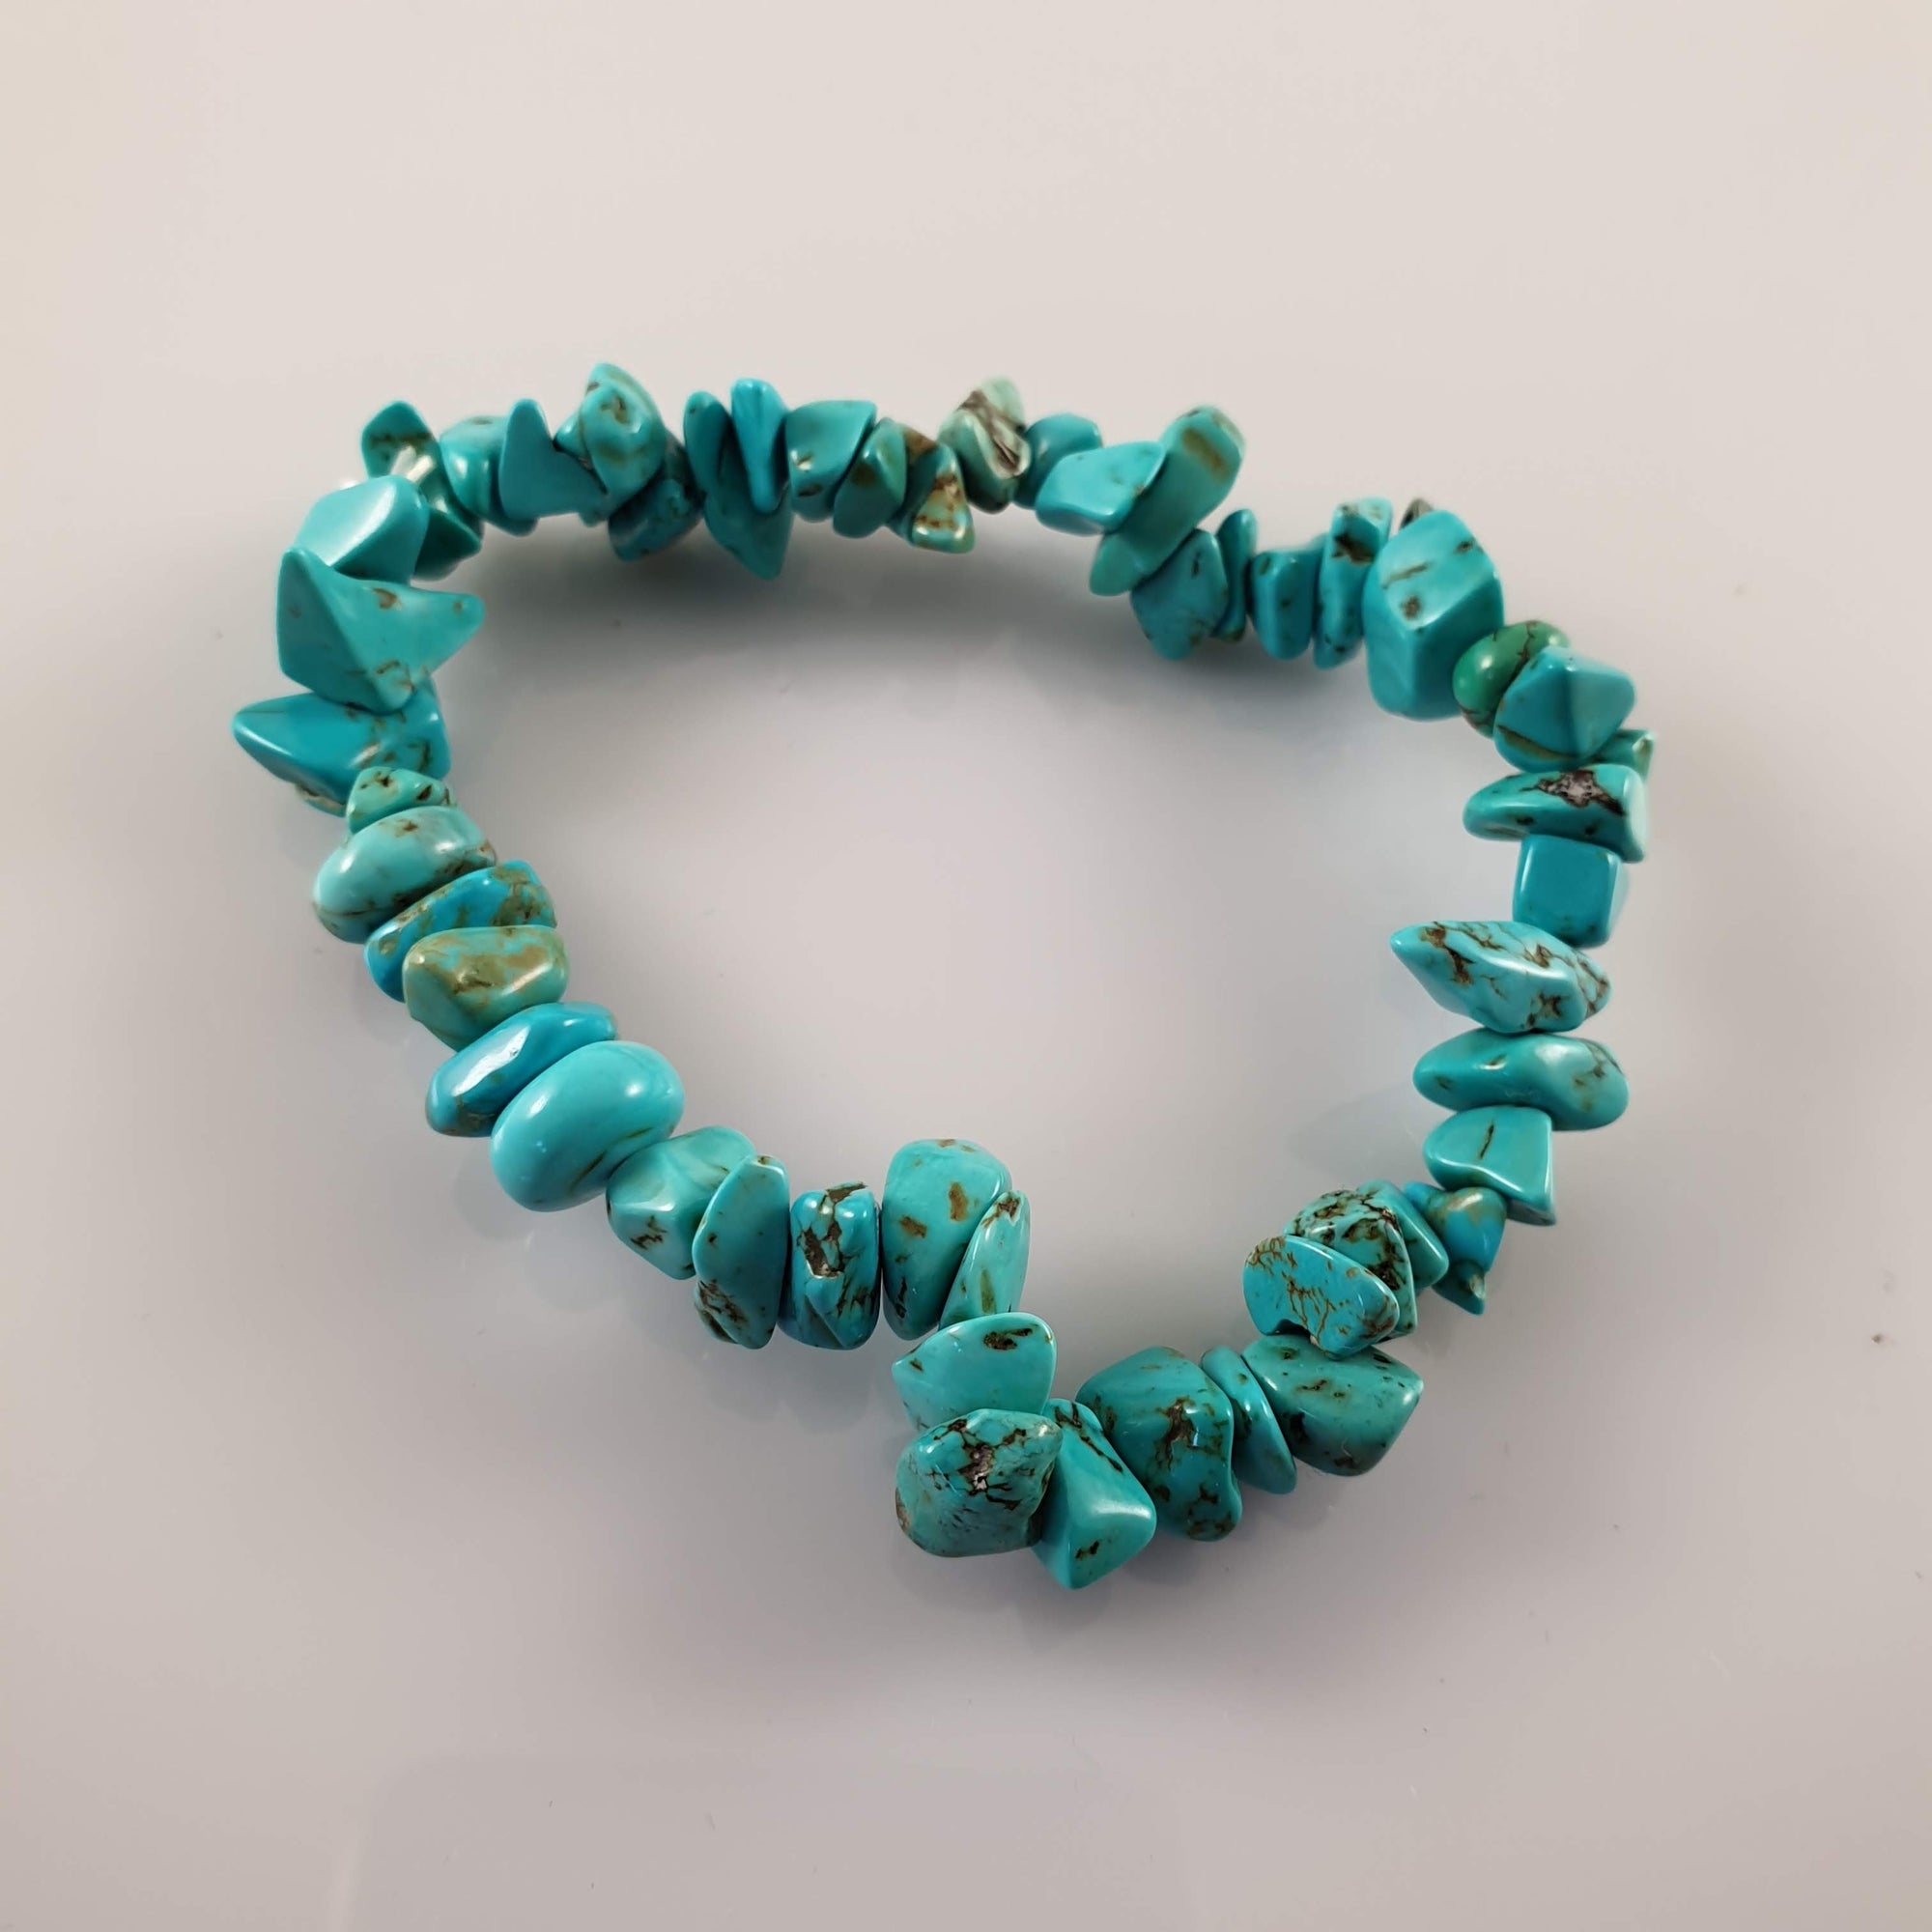 Turquoise Chip Crystal Bracelet - Rivendell Shop NZ